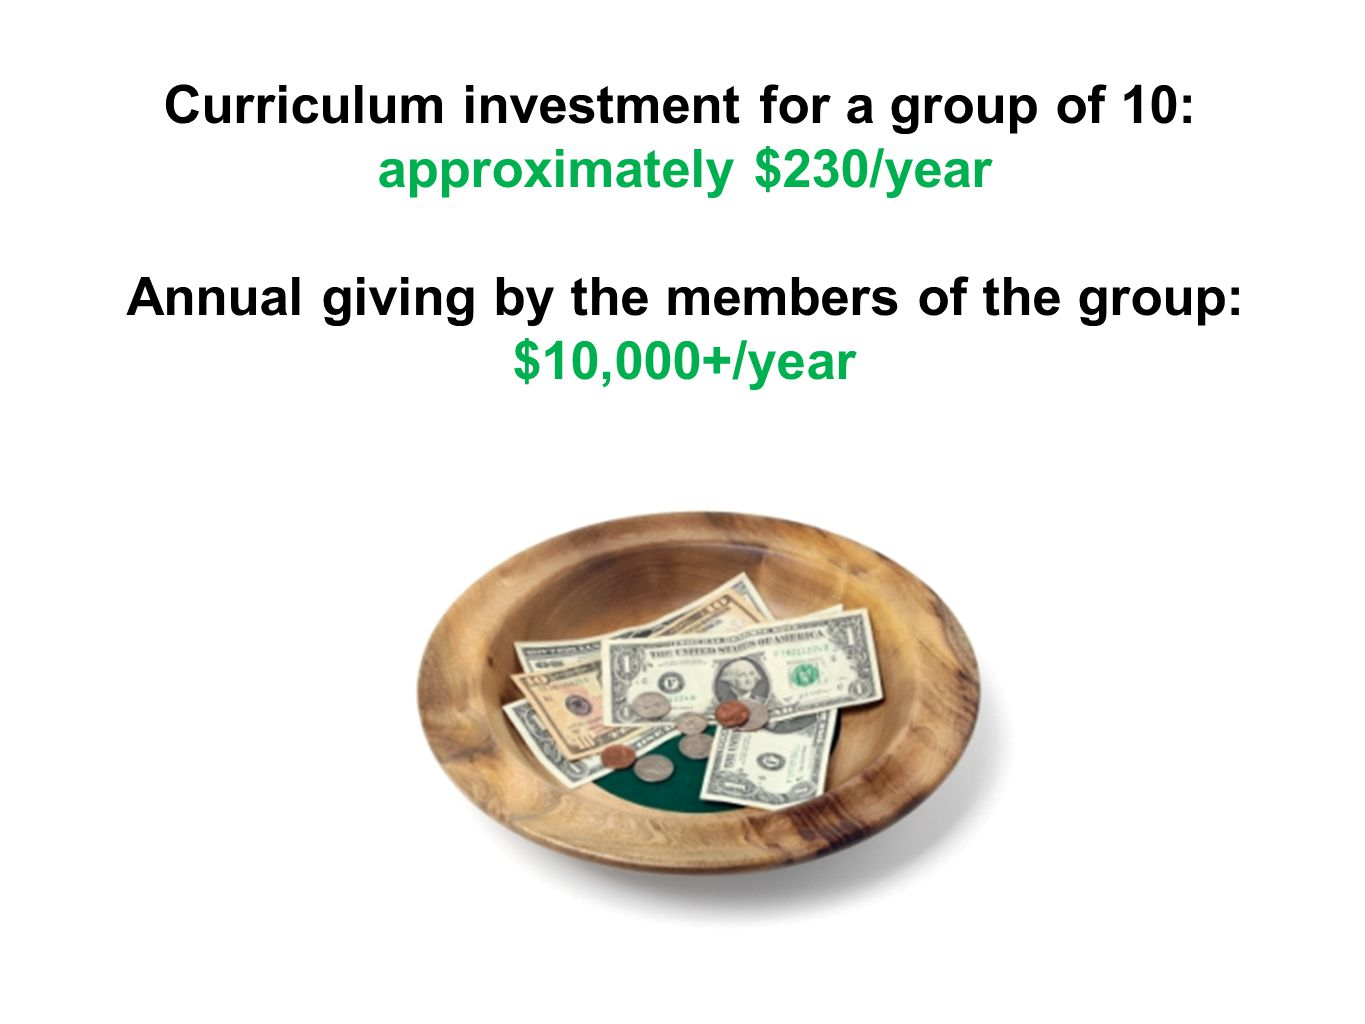 # of people in the group Per capita giving Annual total 10$20$10,400 15$20$15,600 10$35$18,200 15$35$27,300 10$50$26,000